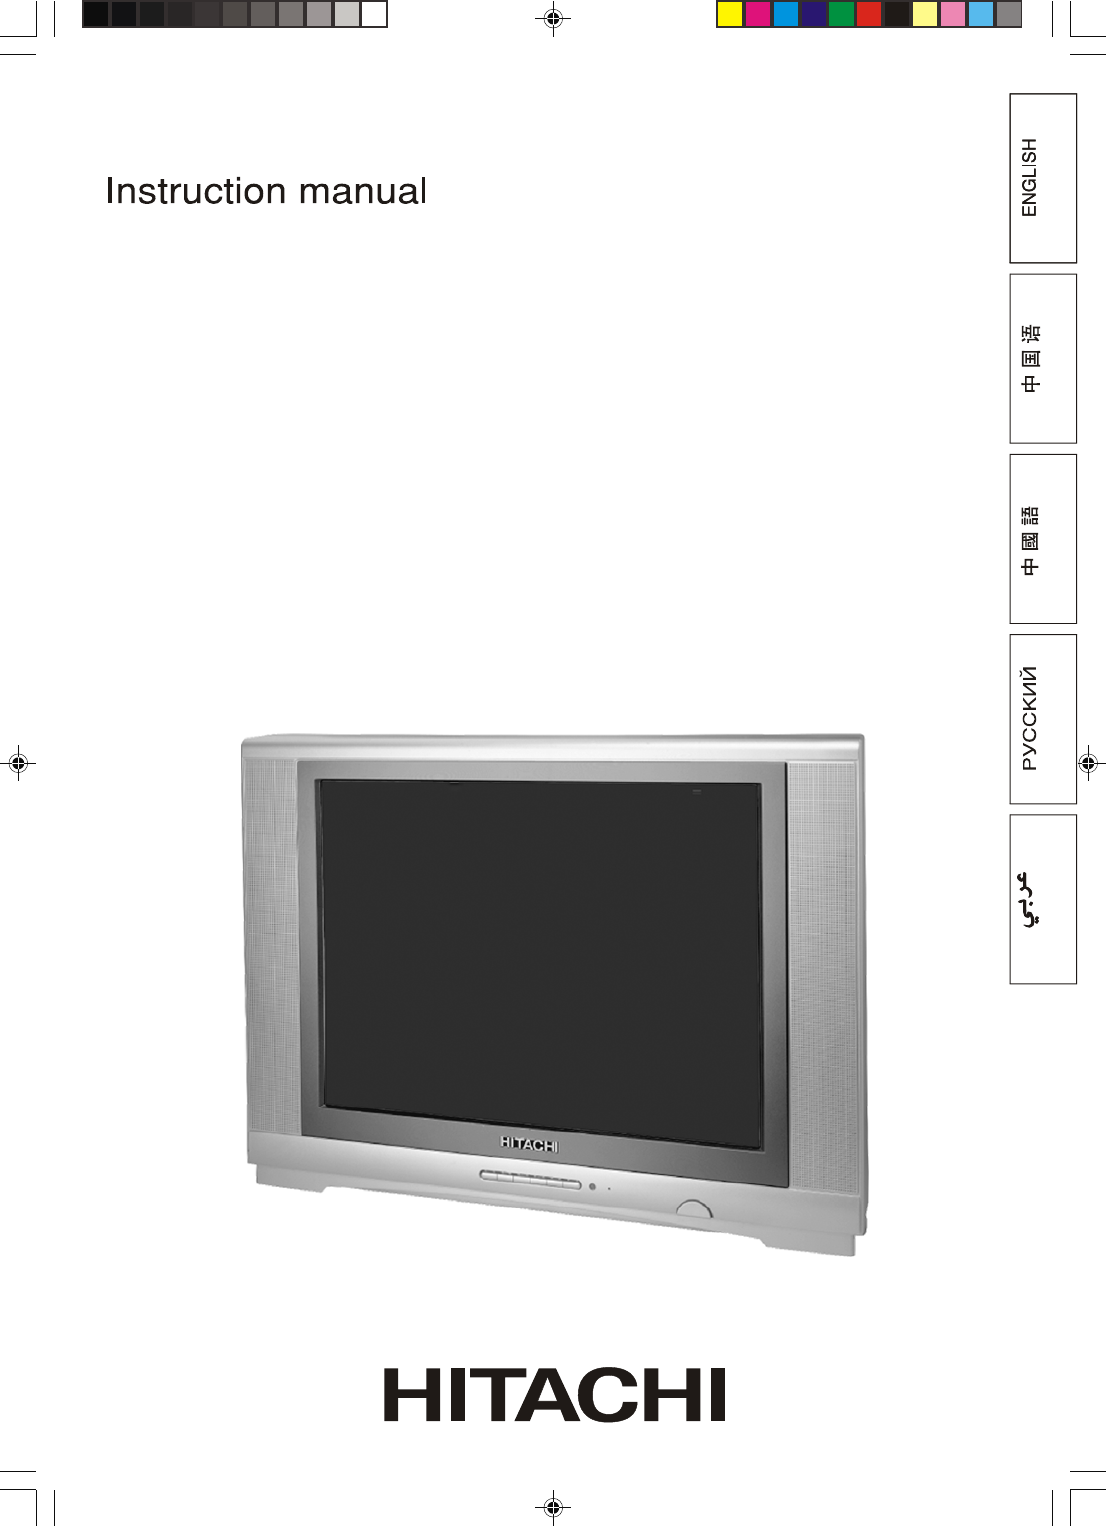 Hitachi CRT Television C29-F880SN User Guide | ManualsOnline com